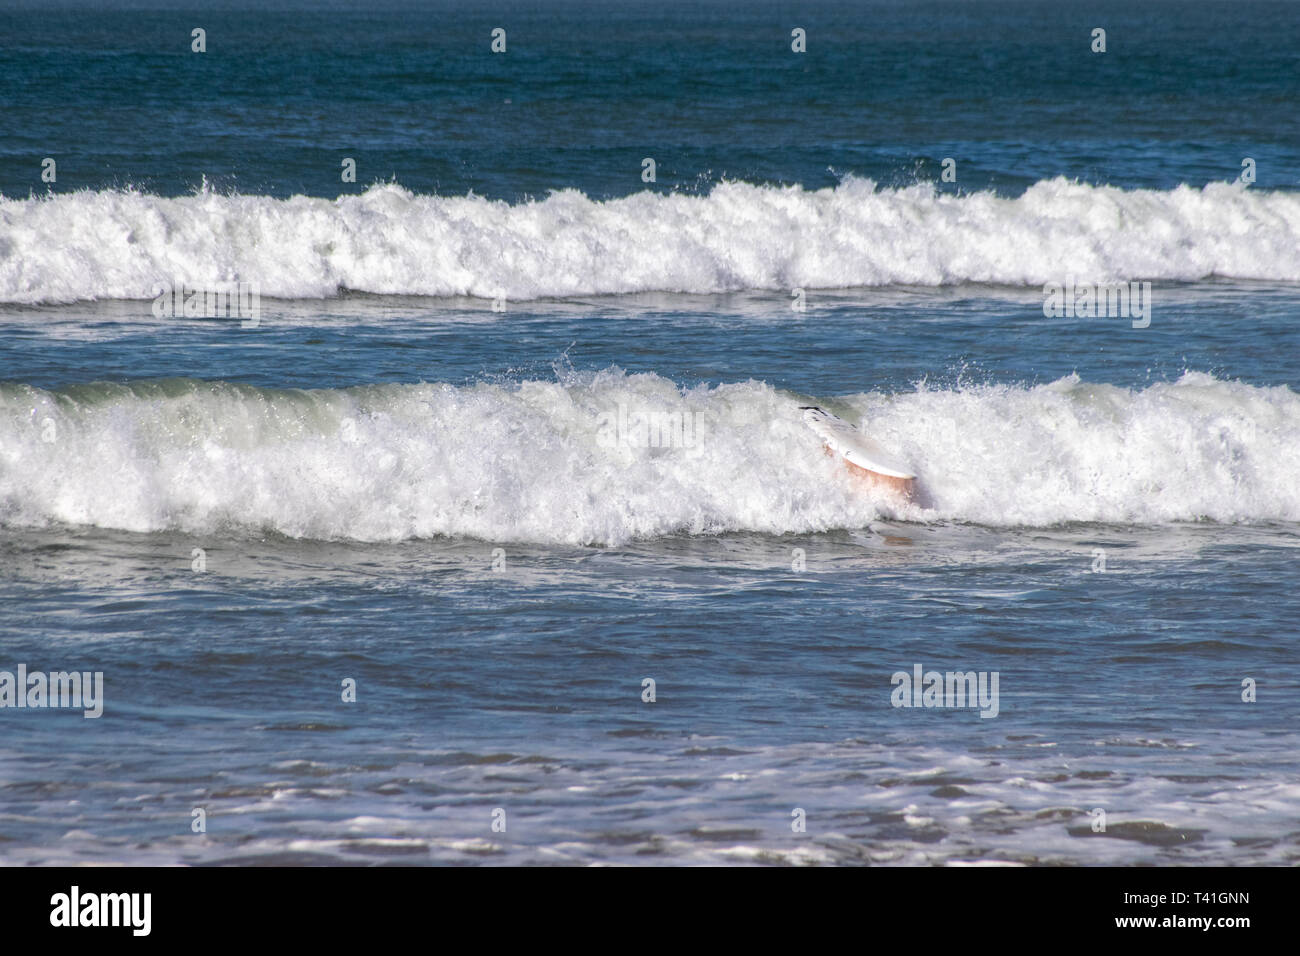 Surfboard wipe out Stock Photo